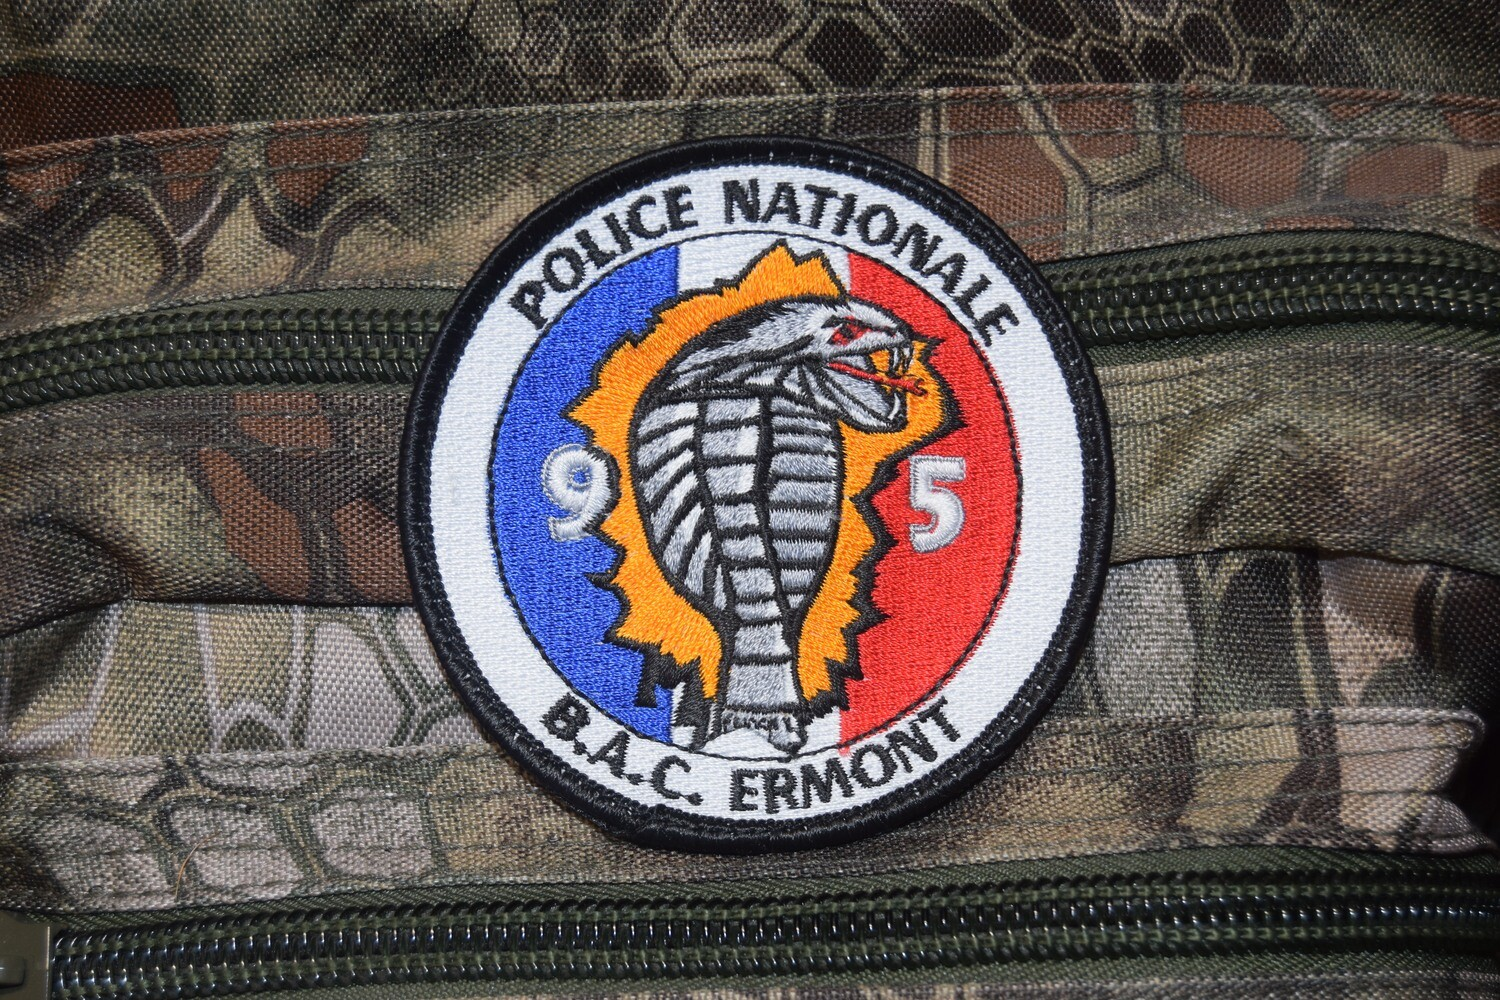 Patch Police Nationale BAC ERMONT 95